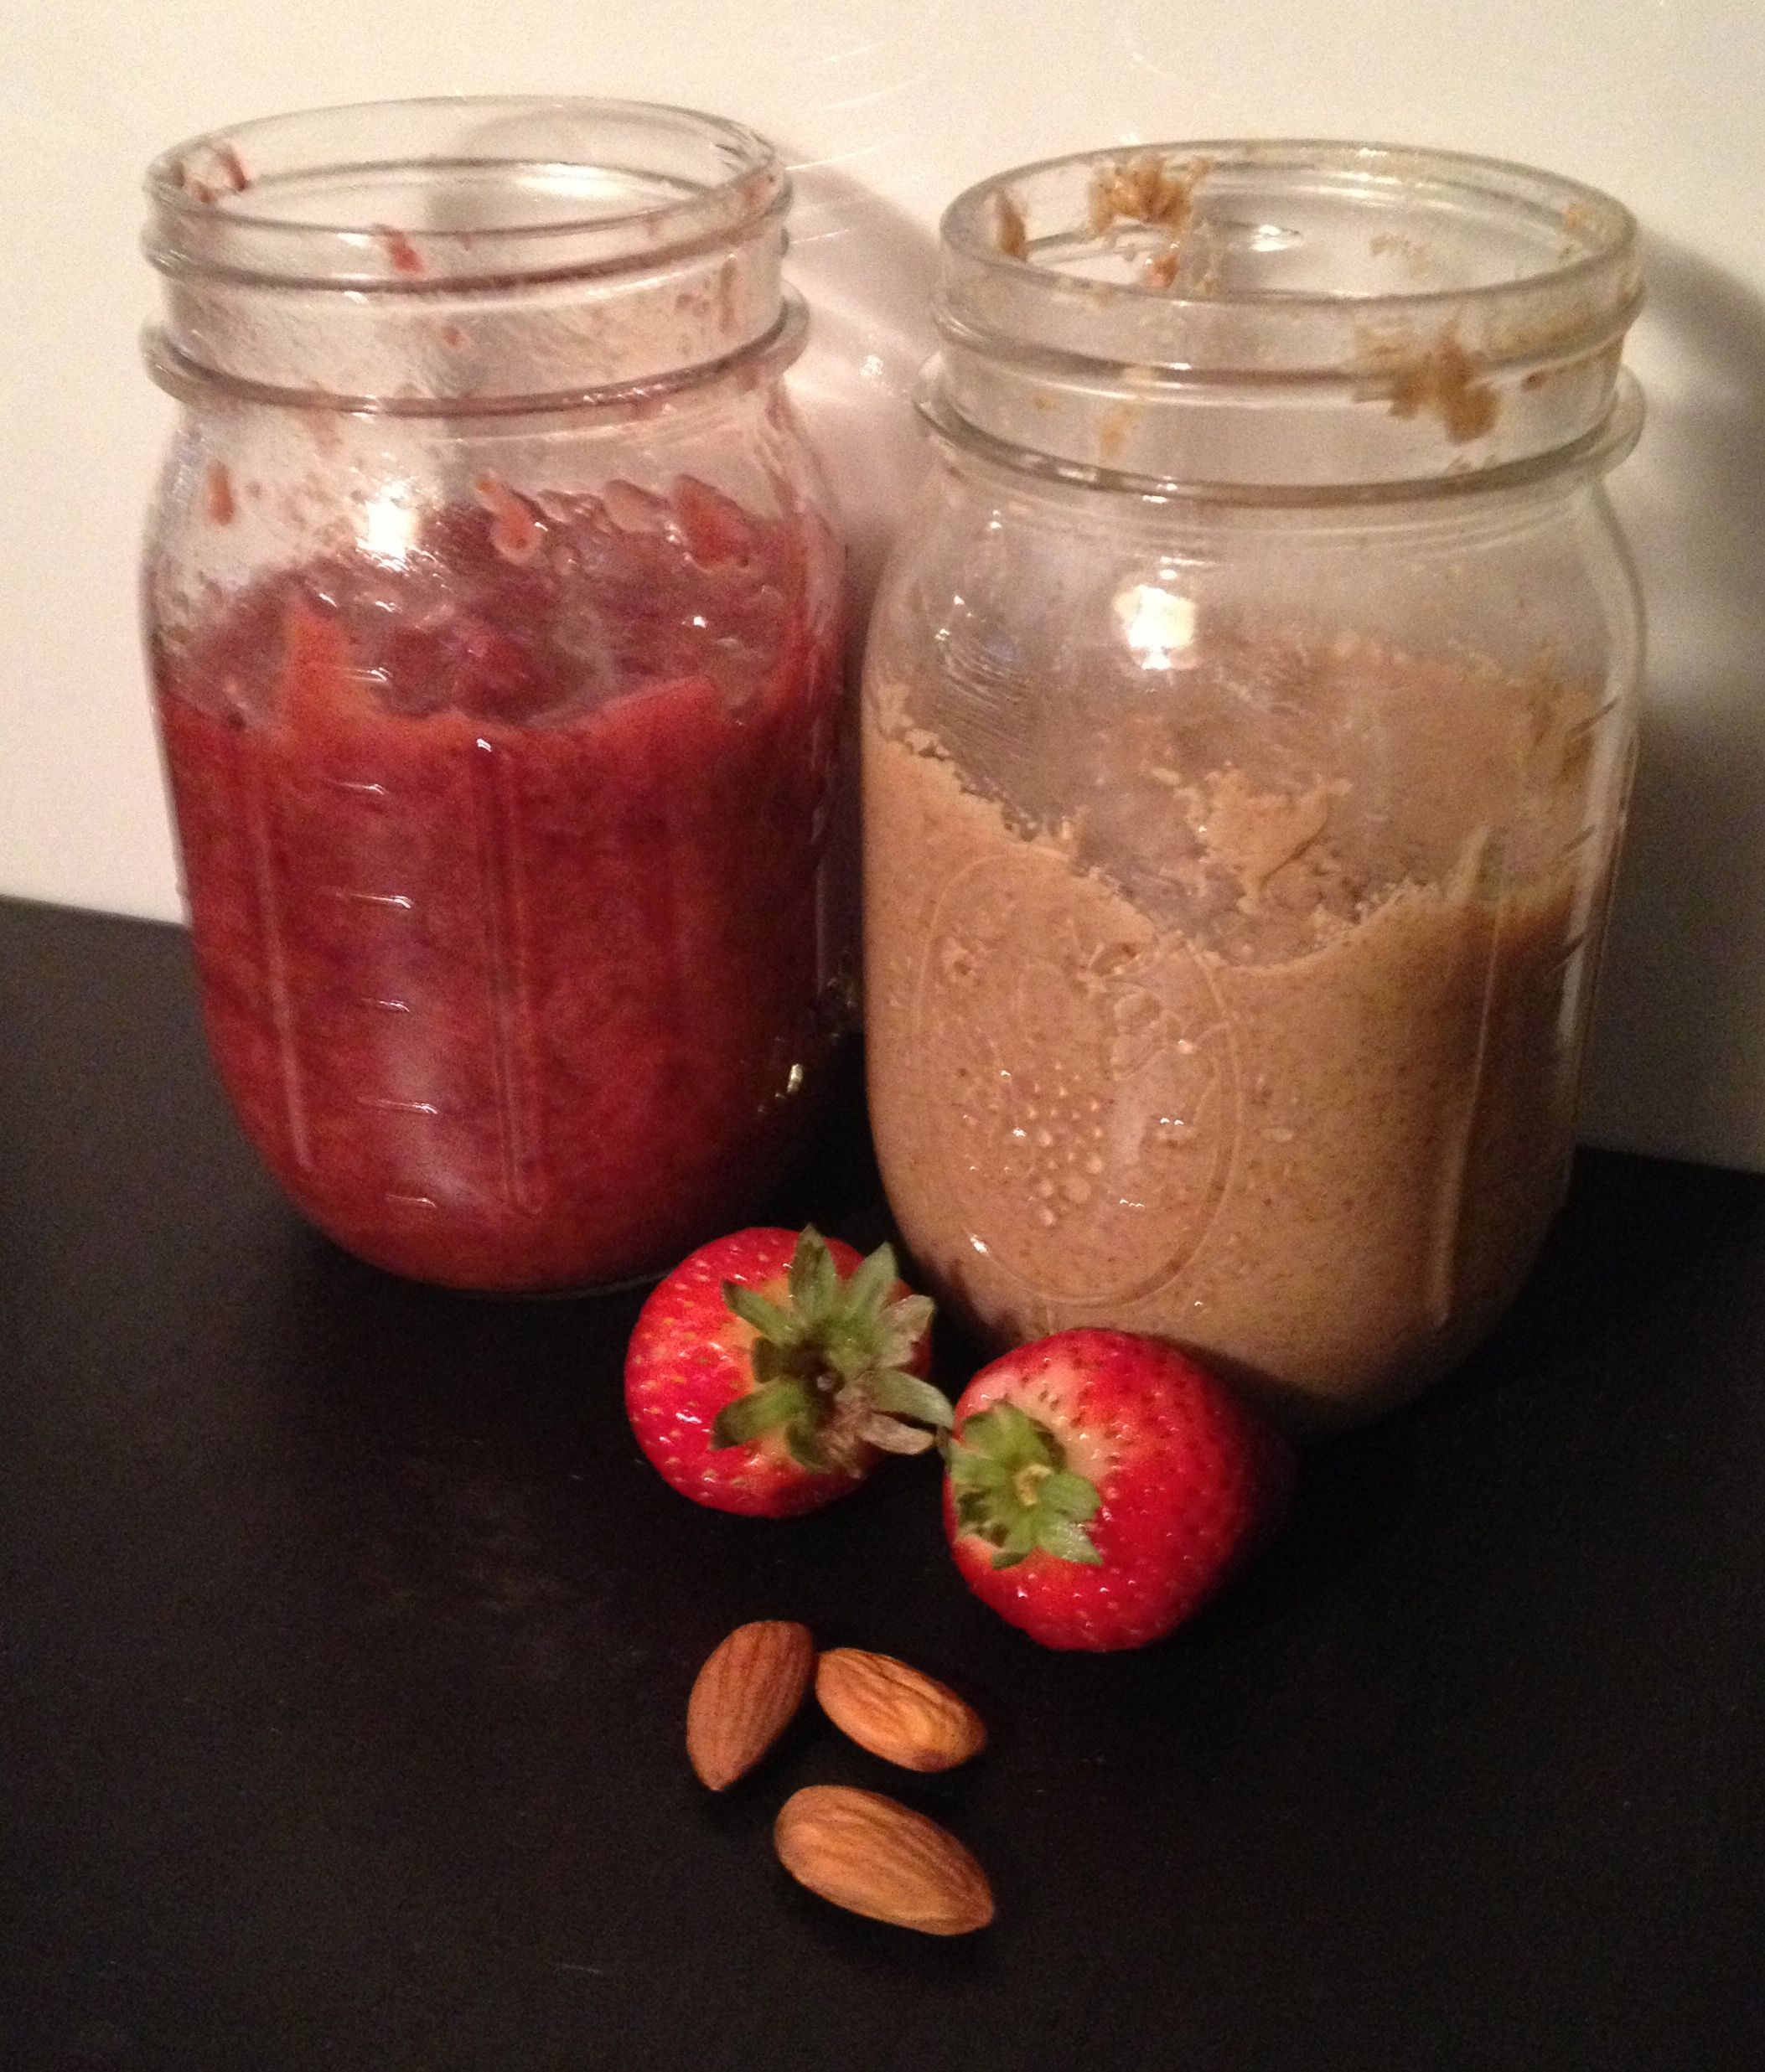 Almond Butter and Strawberry Jam